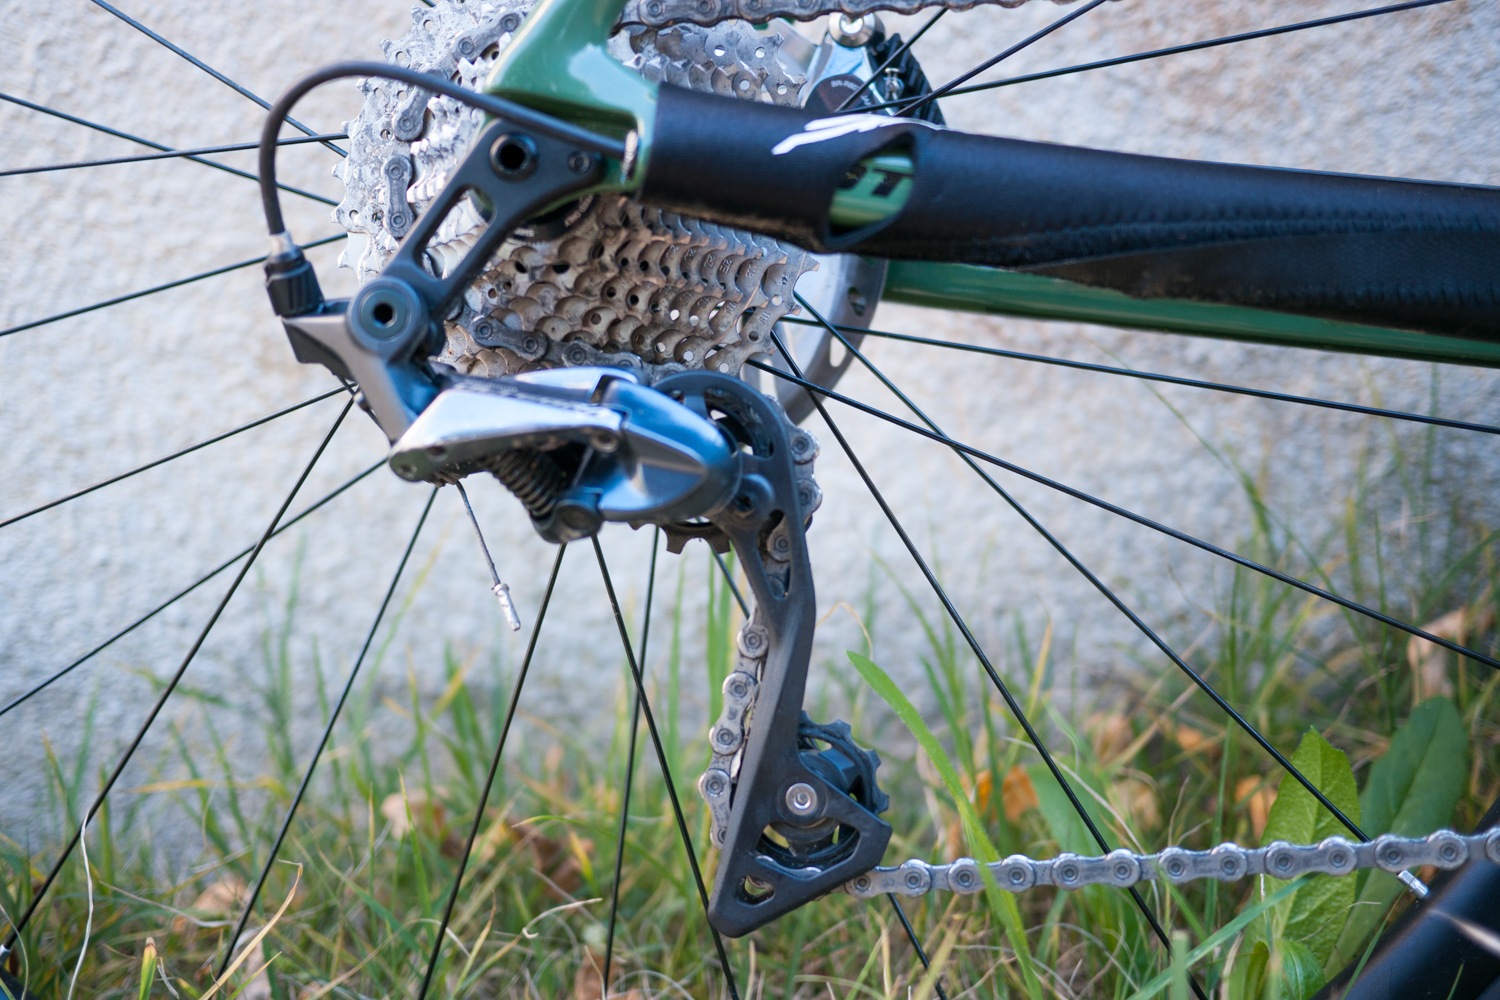 Scott Addict Gravel 20 rear derailleur test review